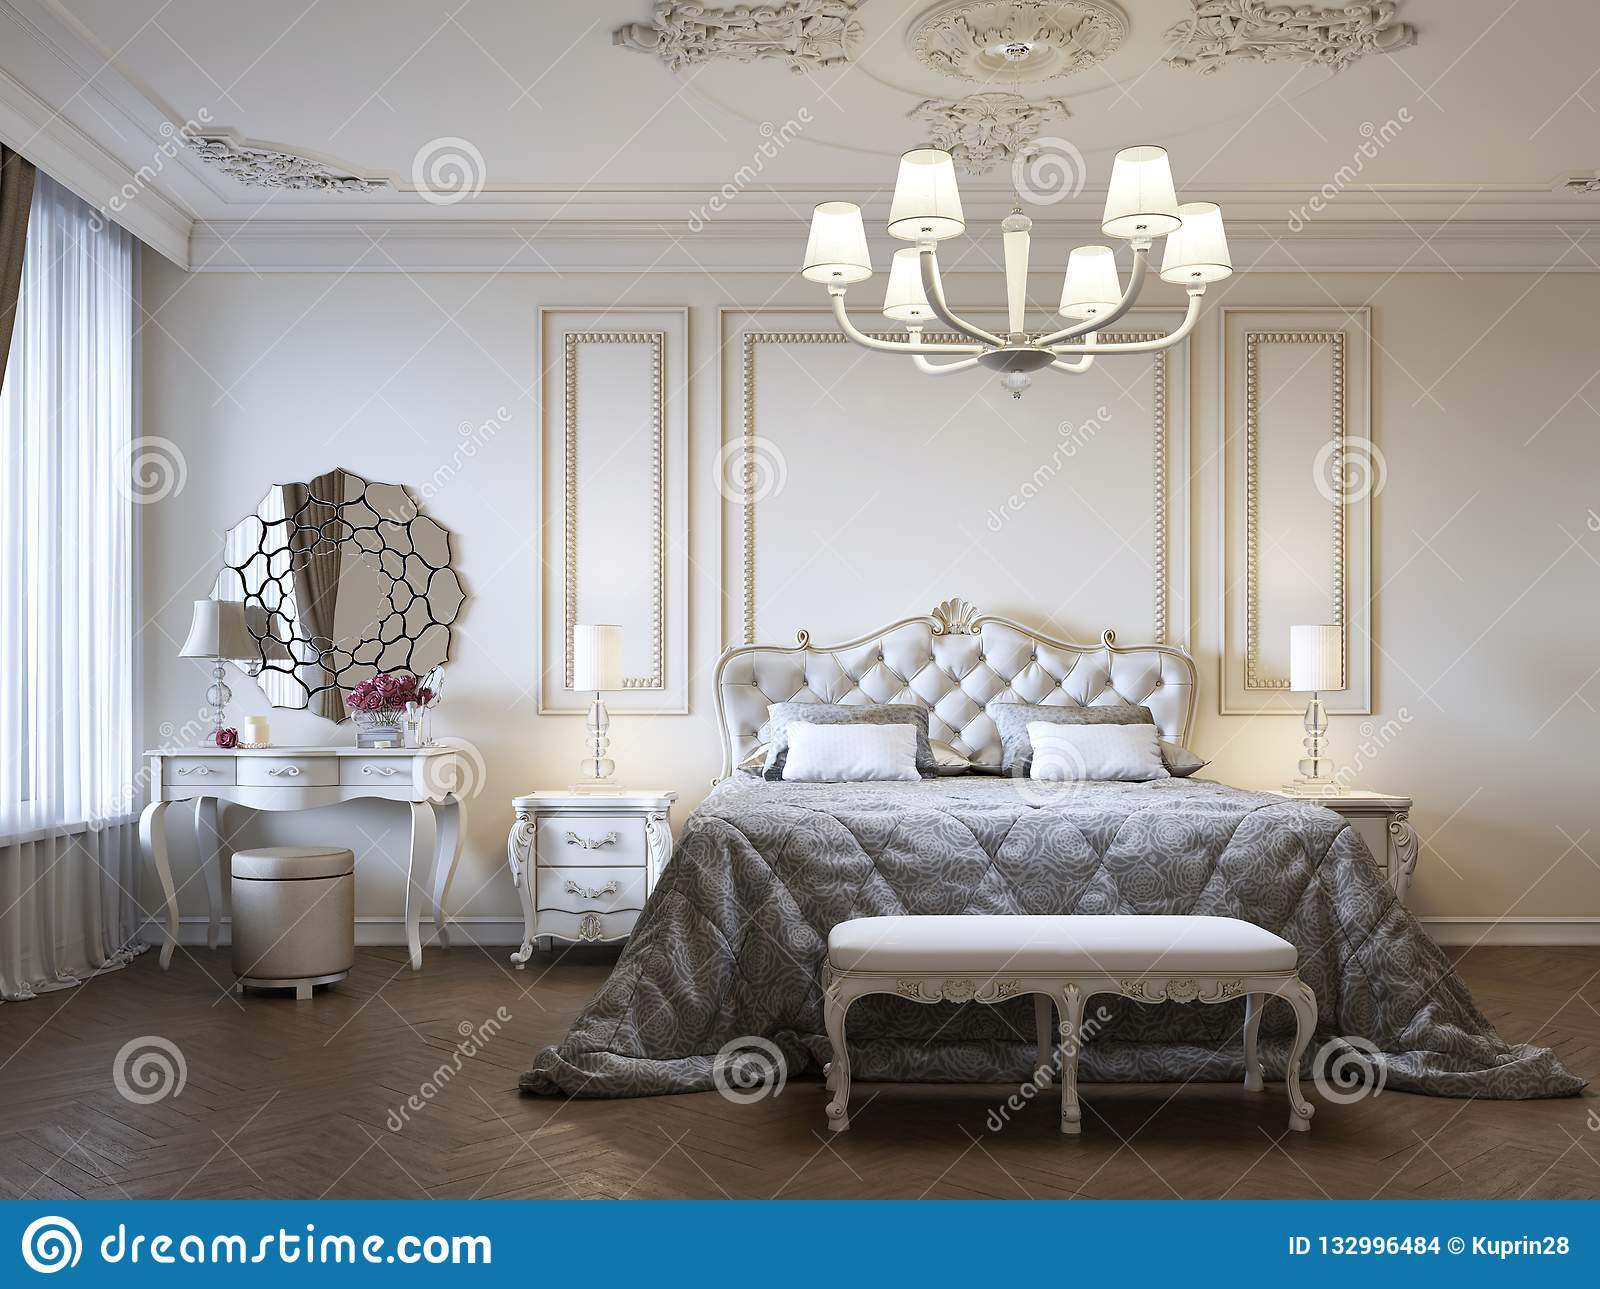 Dressing A Bed Luxurious Bedroom With Bed And Bedside Tables And Dressing Table